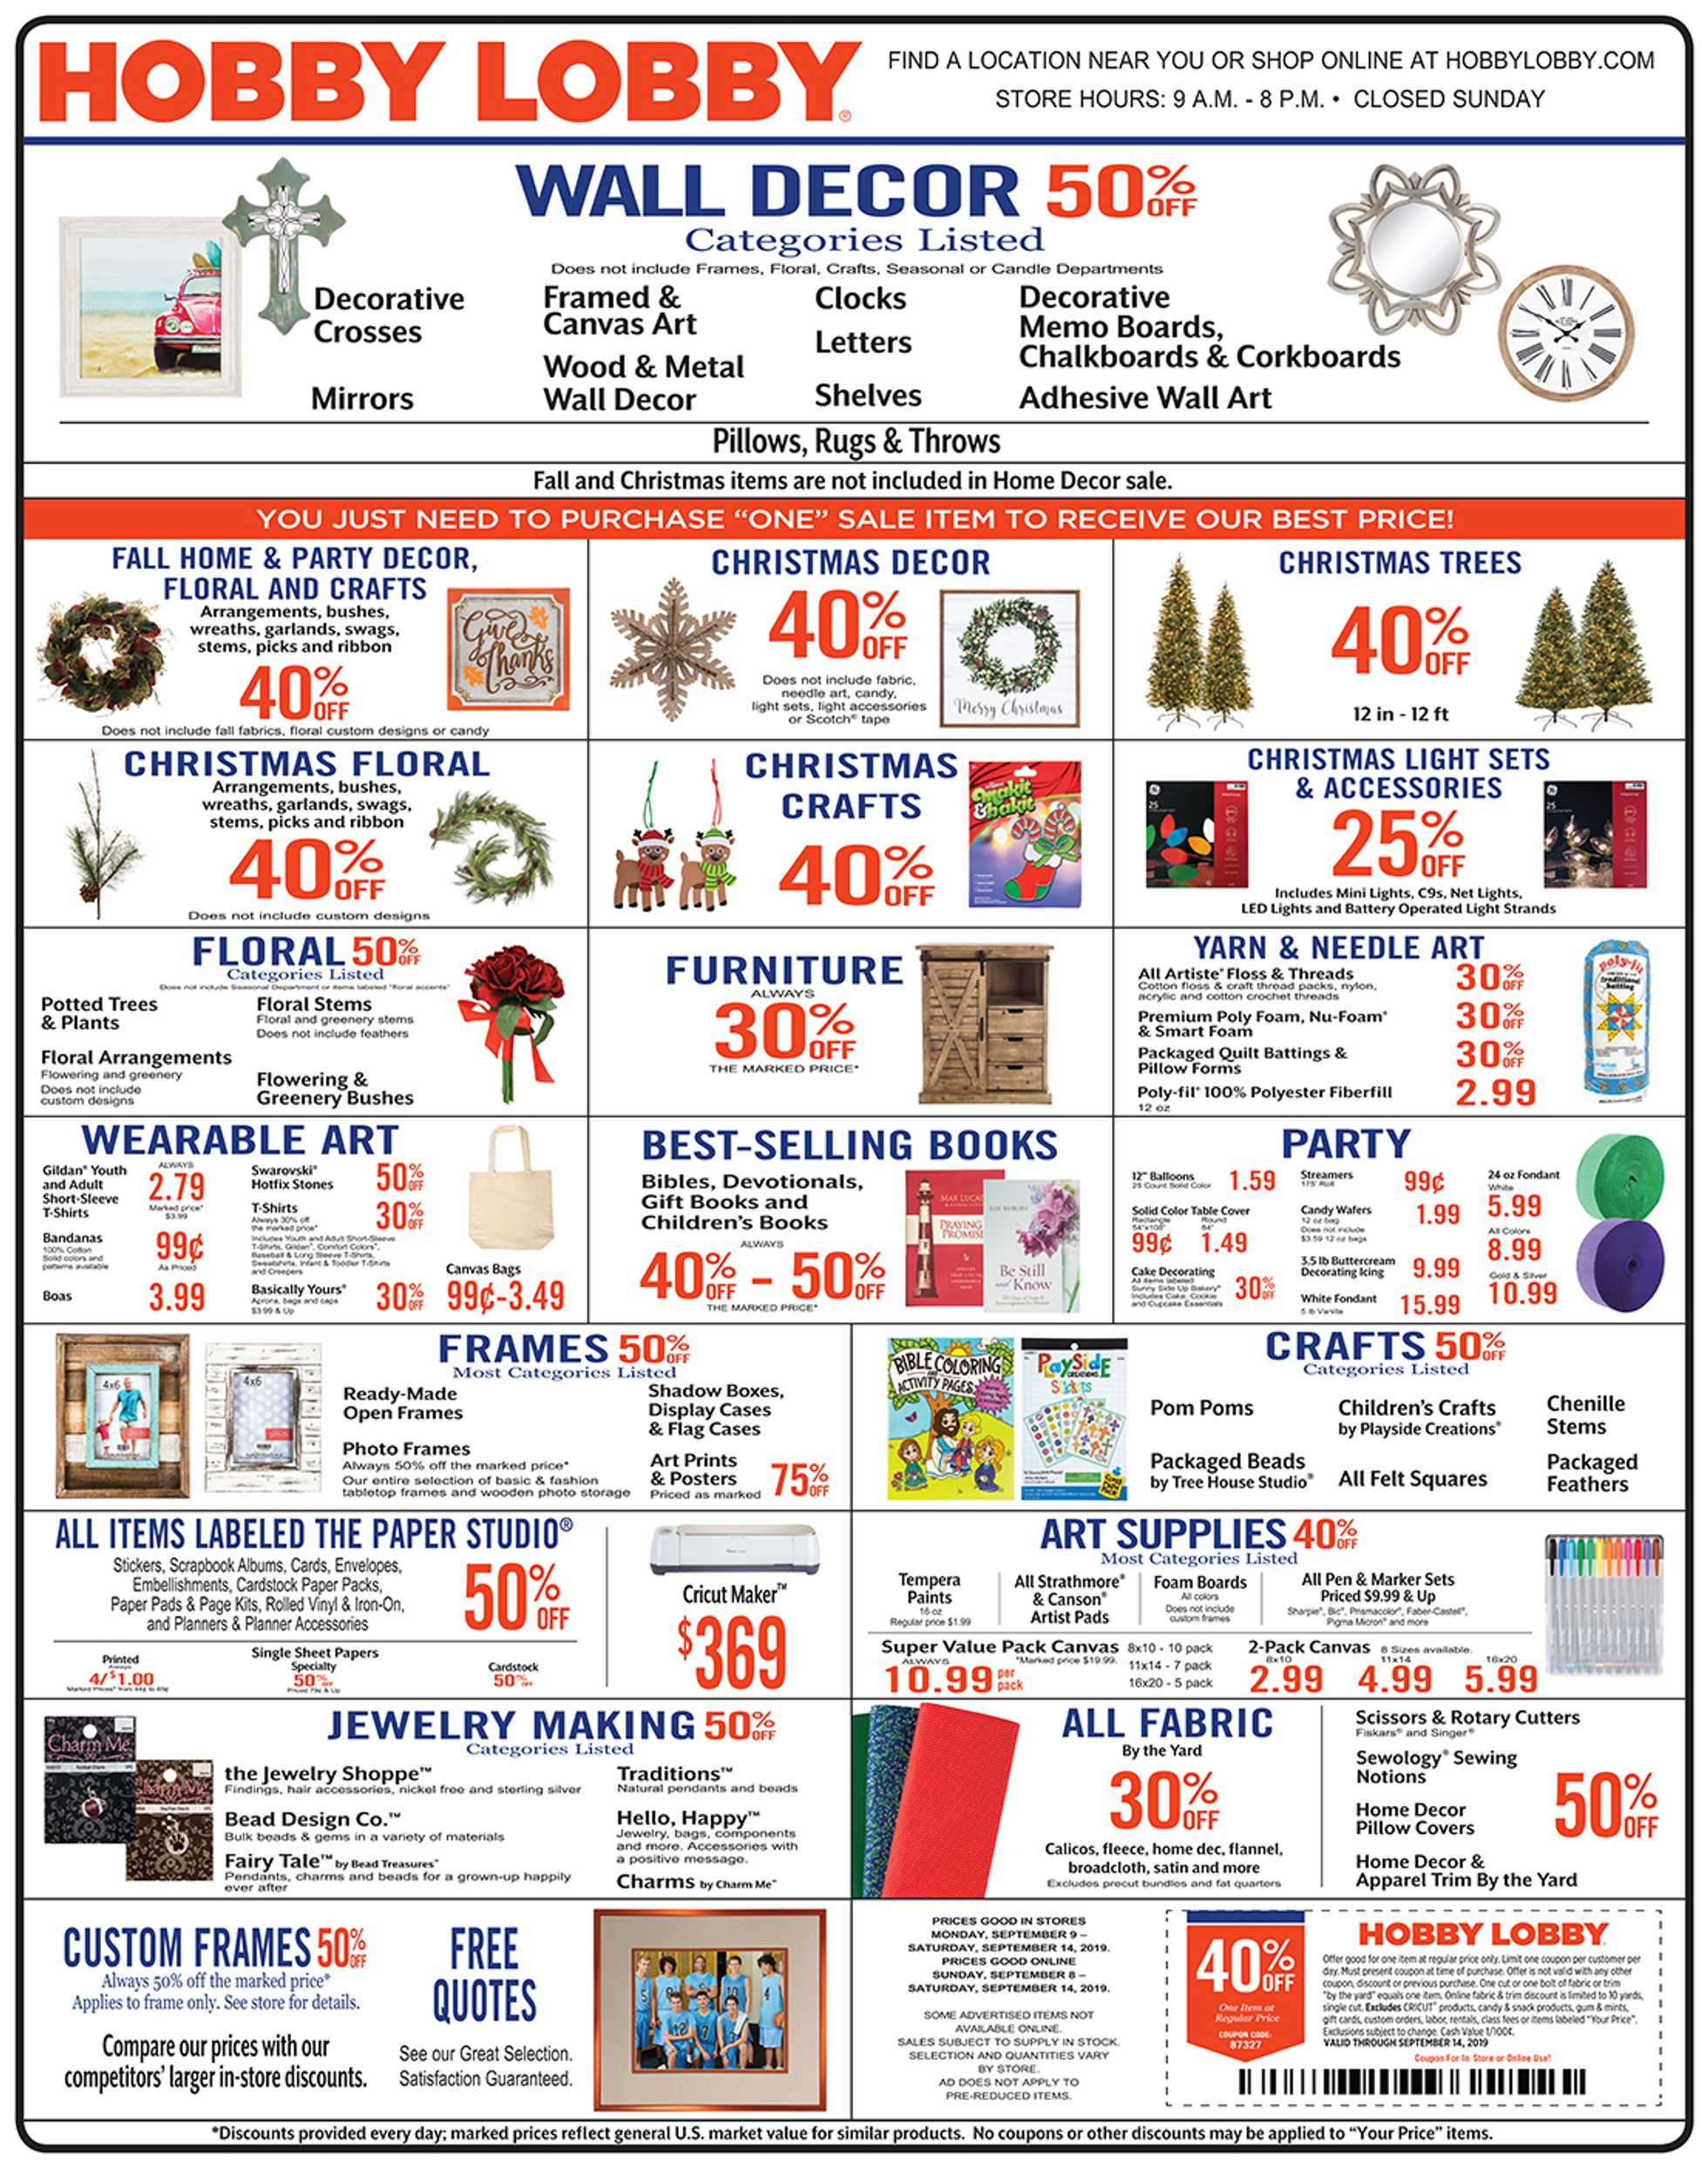 Hobby Lobby Weekly Ad Coupon 09 09 19 Us Promotons Com